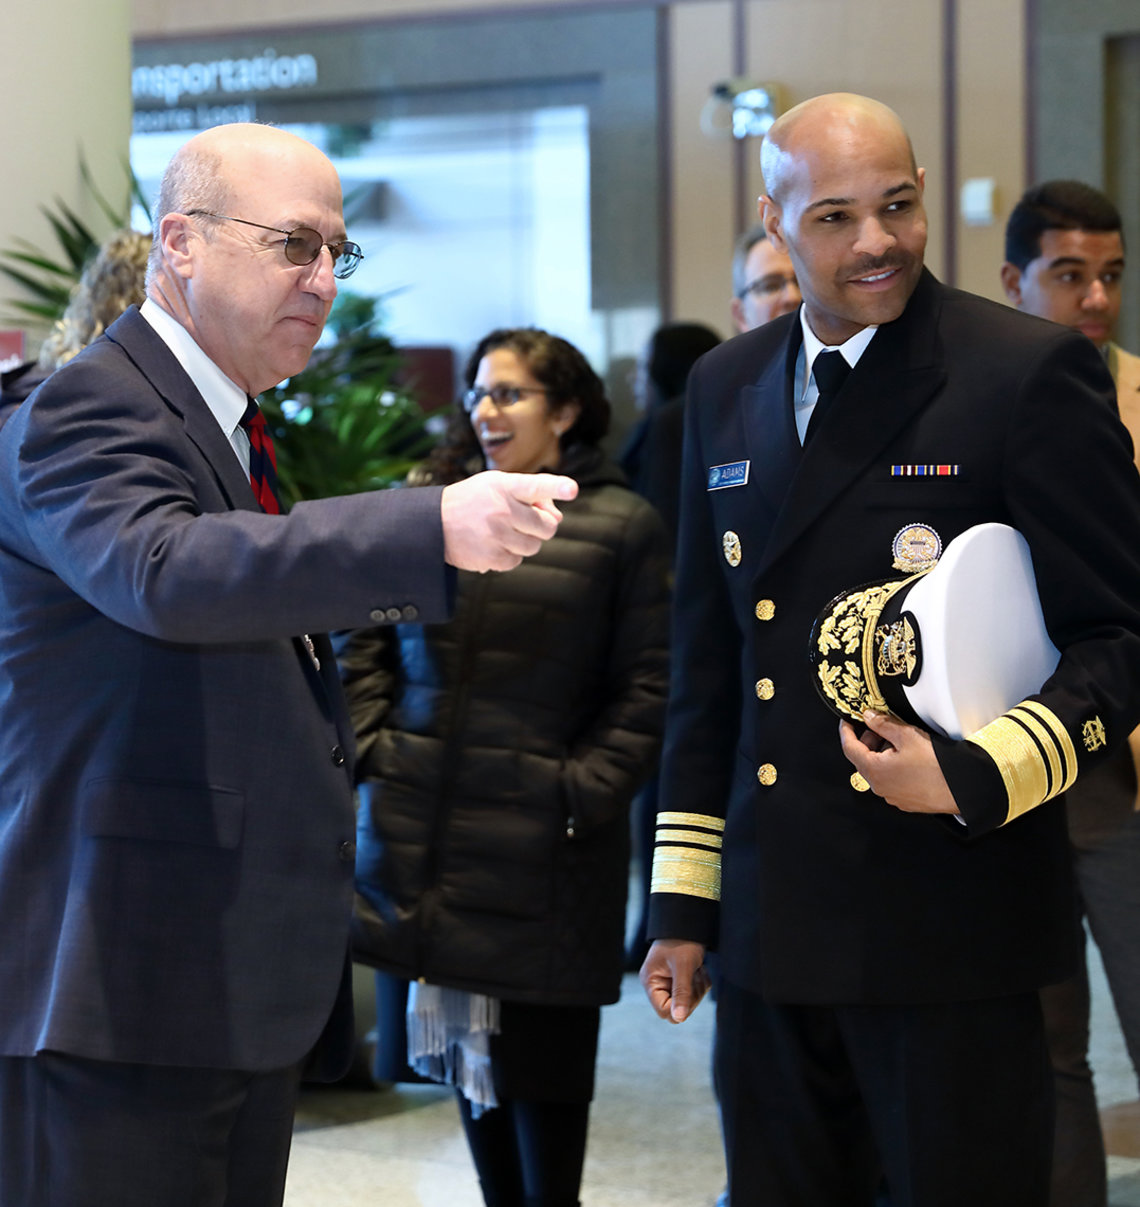 Dr. Gilman chats with U.S. surgeon general Dr. Adams in Clinical Center lobby